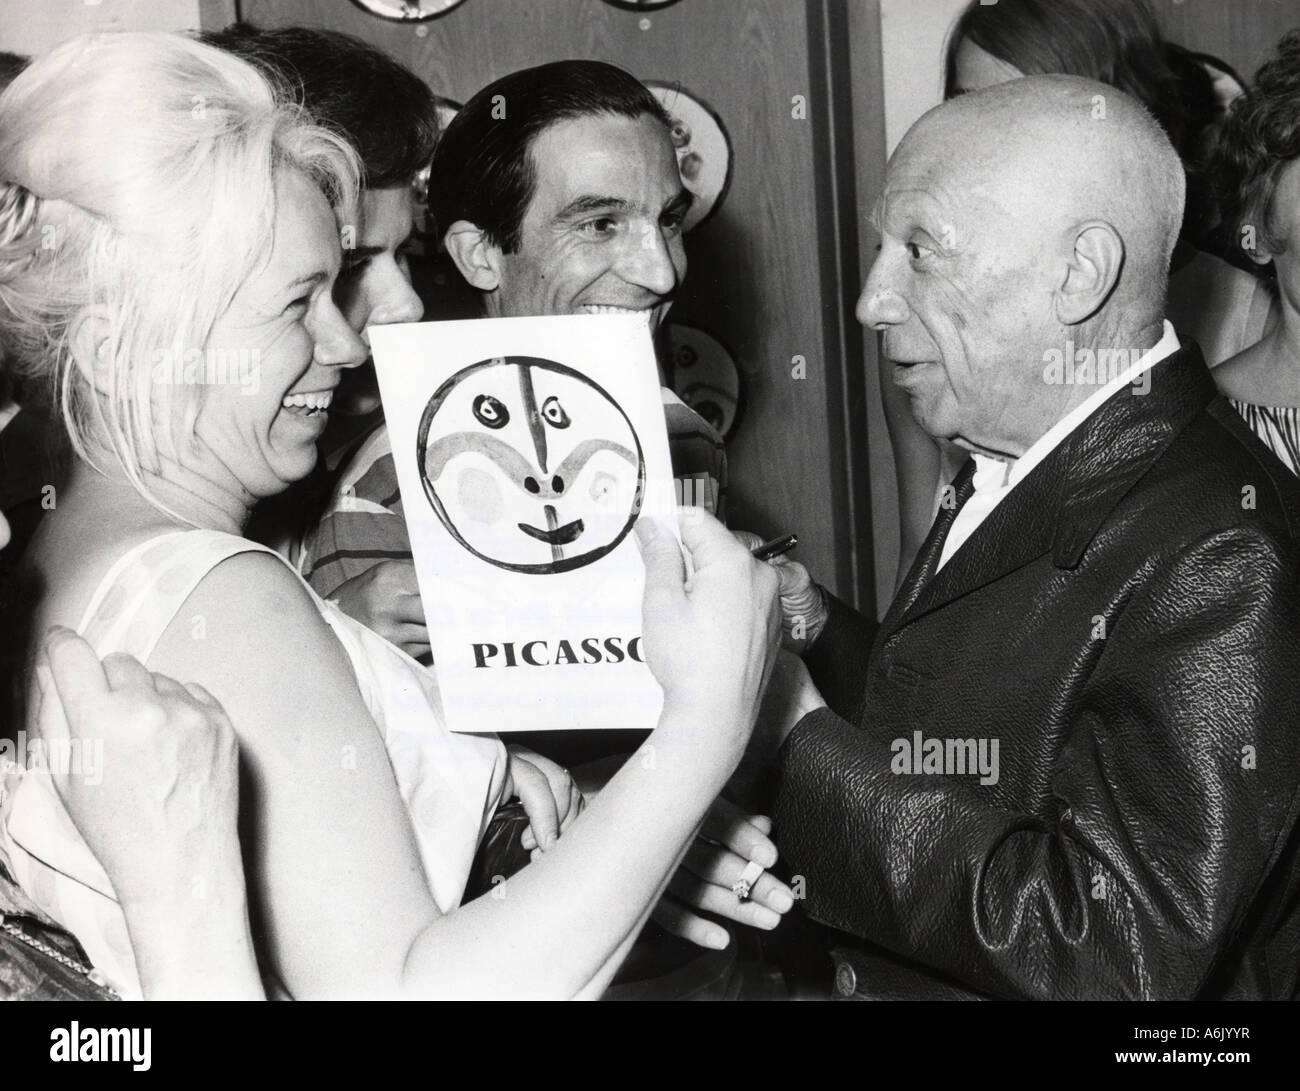 PABLO PICASSO Spanish artist signs an autograph - Stock Image